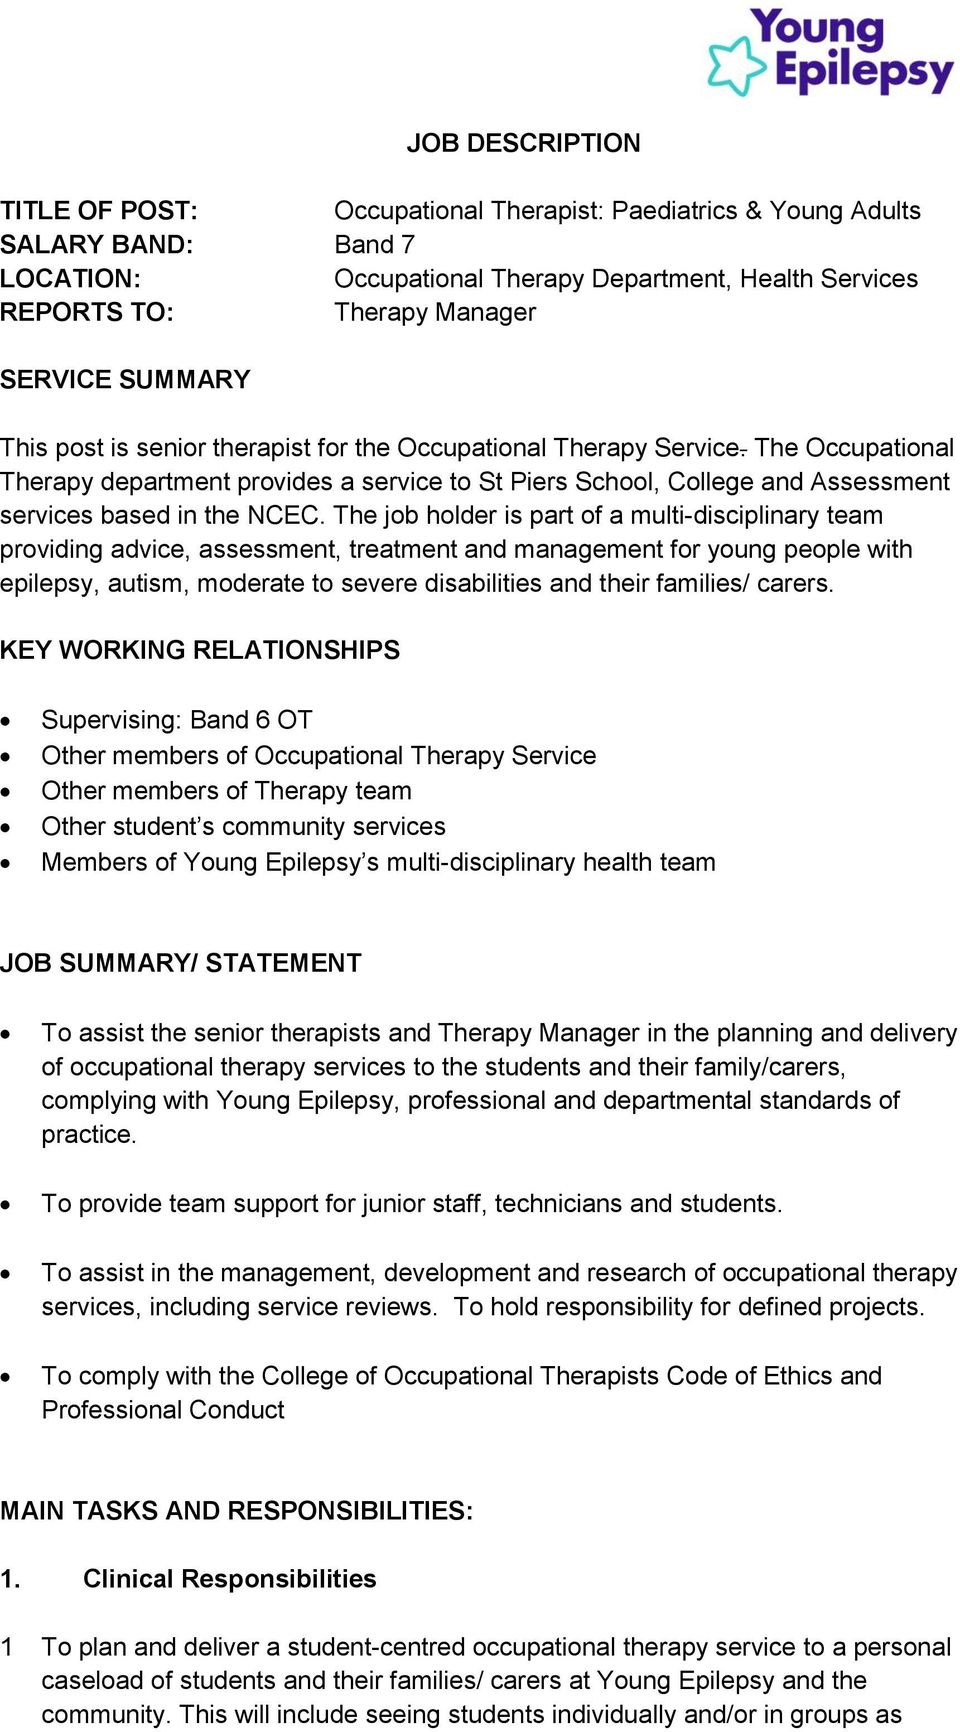 The Occupational Therapy department provides a service to St Piers School, College and Assessment services based in the NCEC.